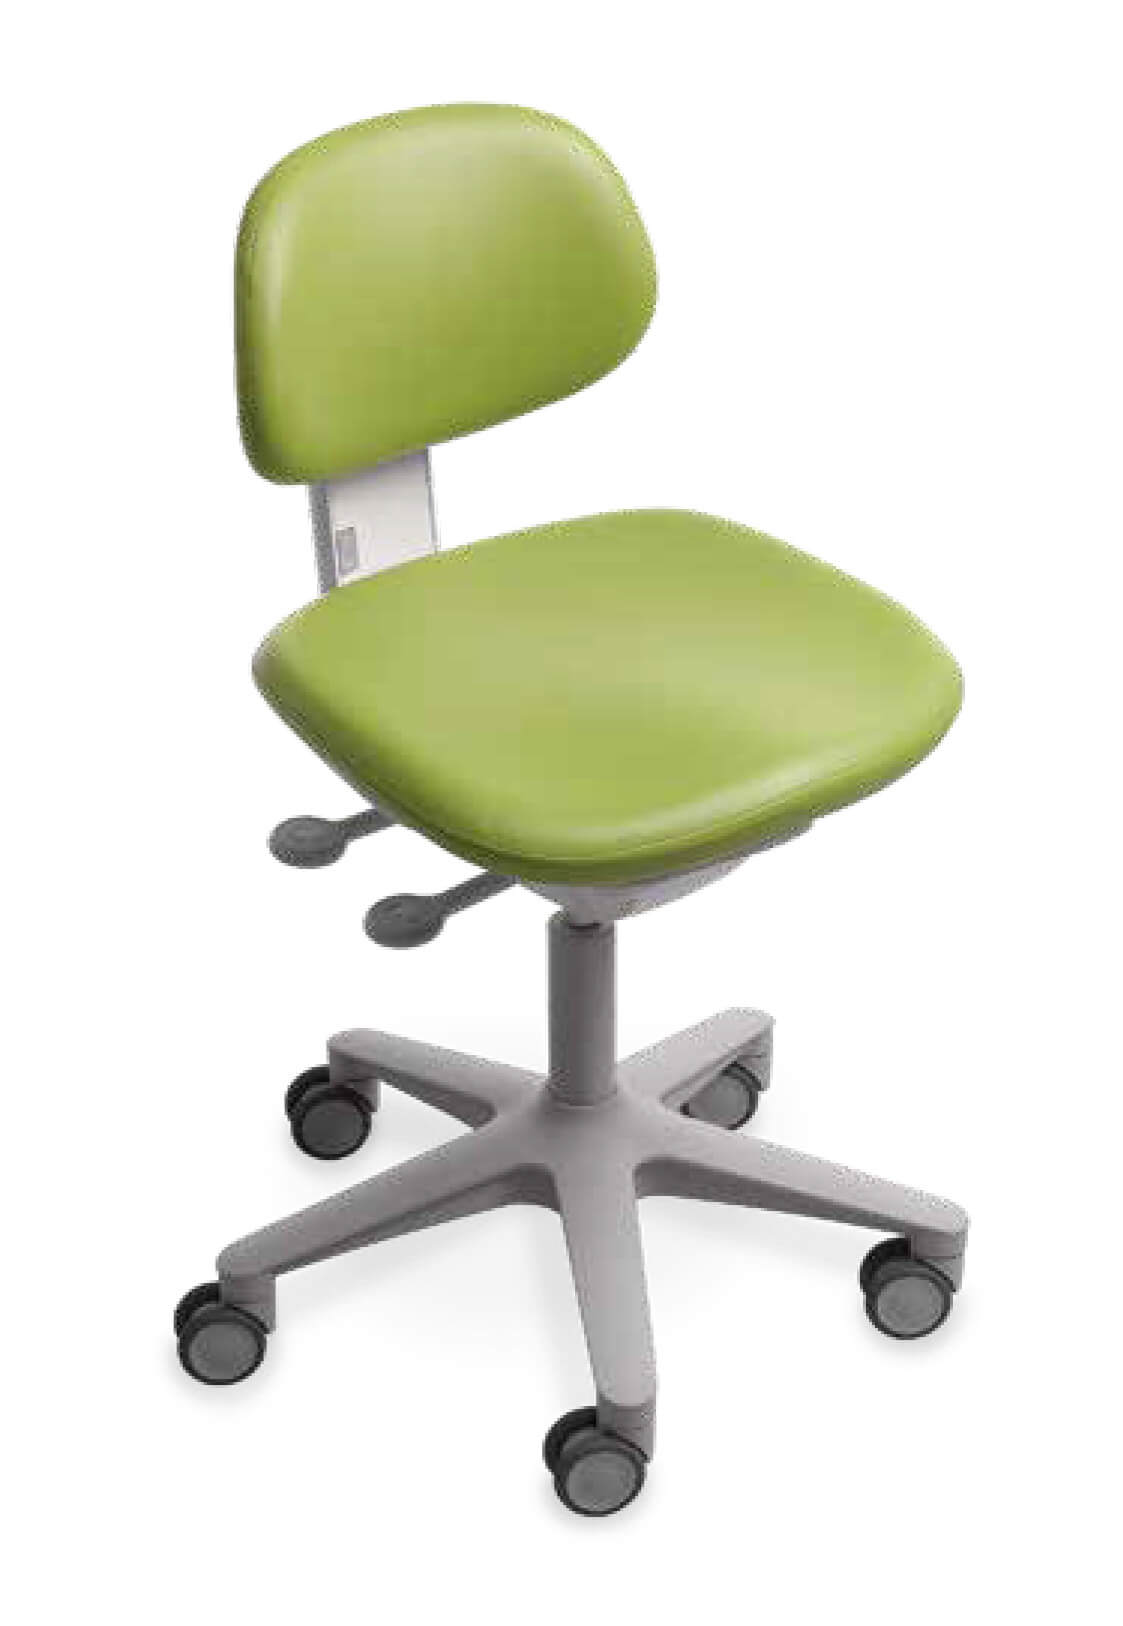 Image of an A-dec 521 Doctor's Stool